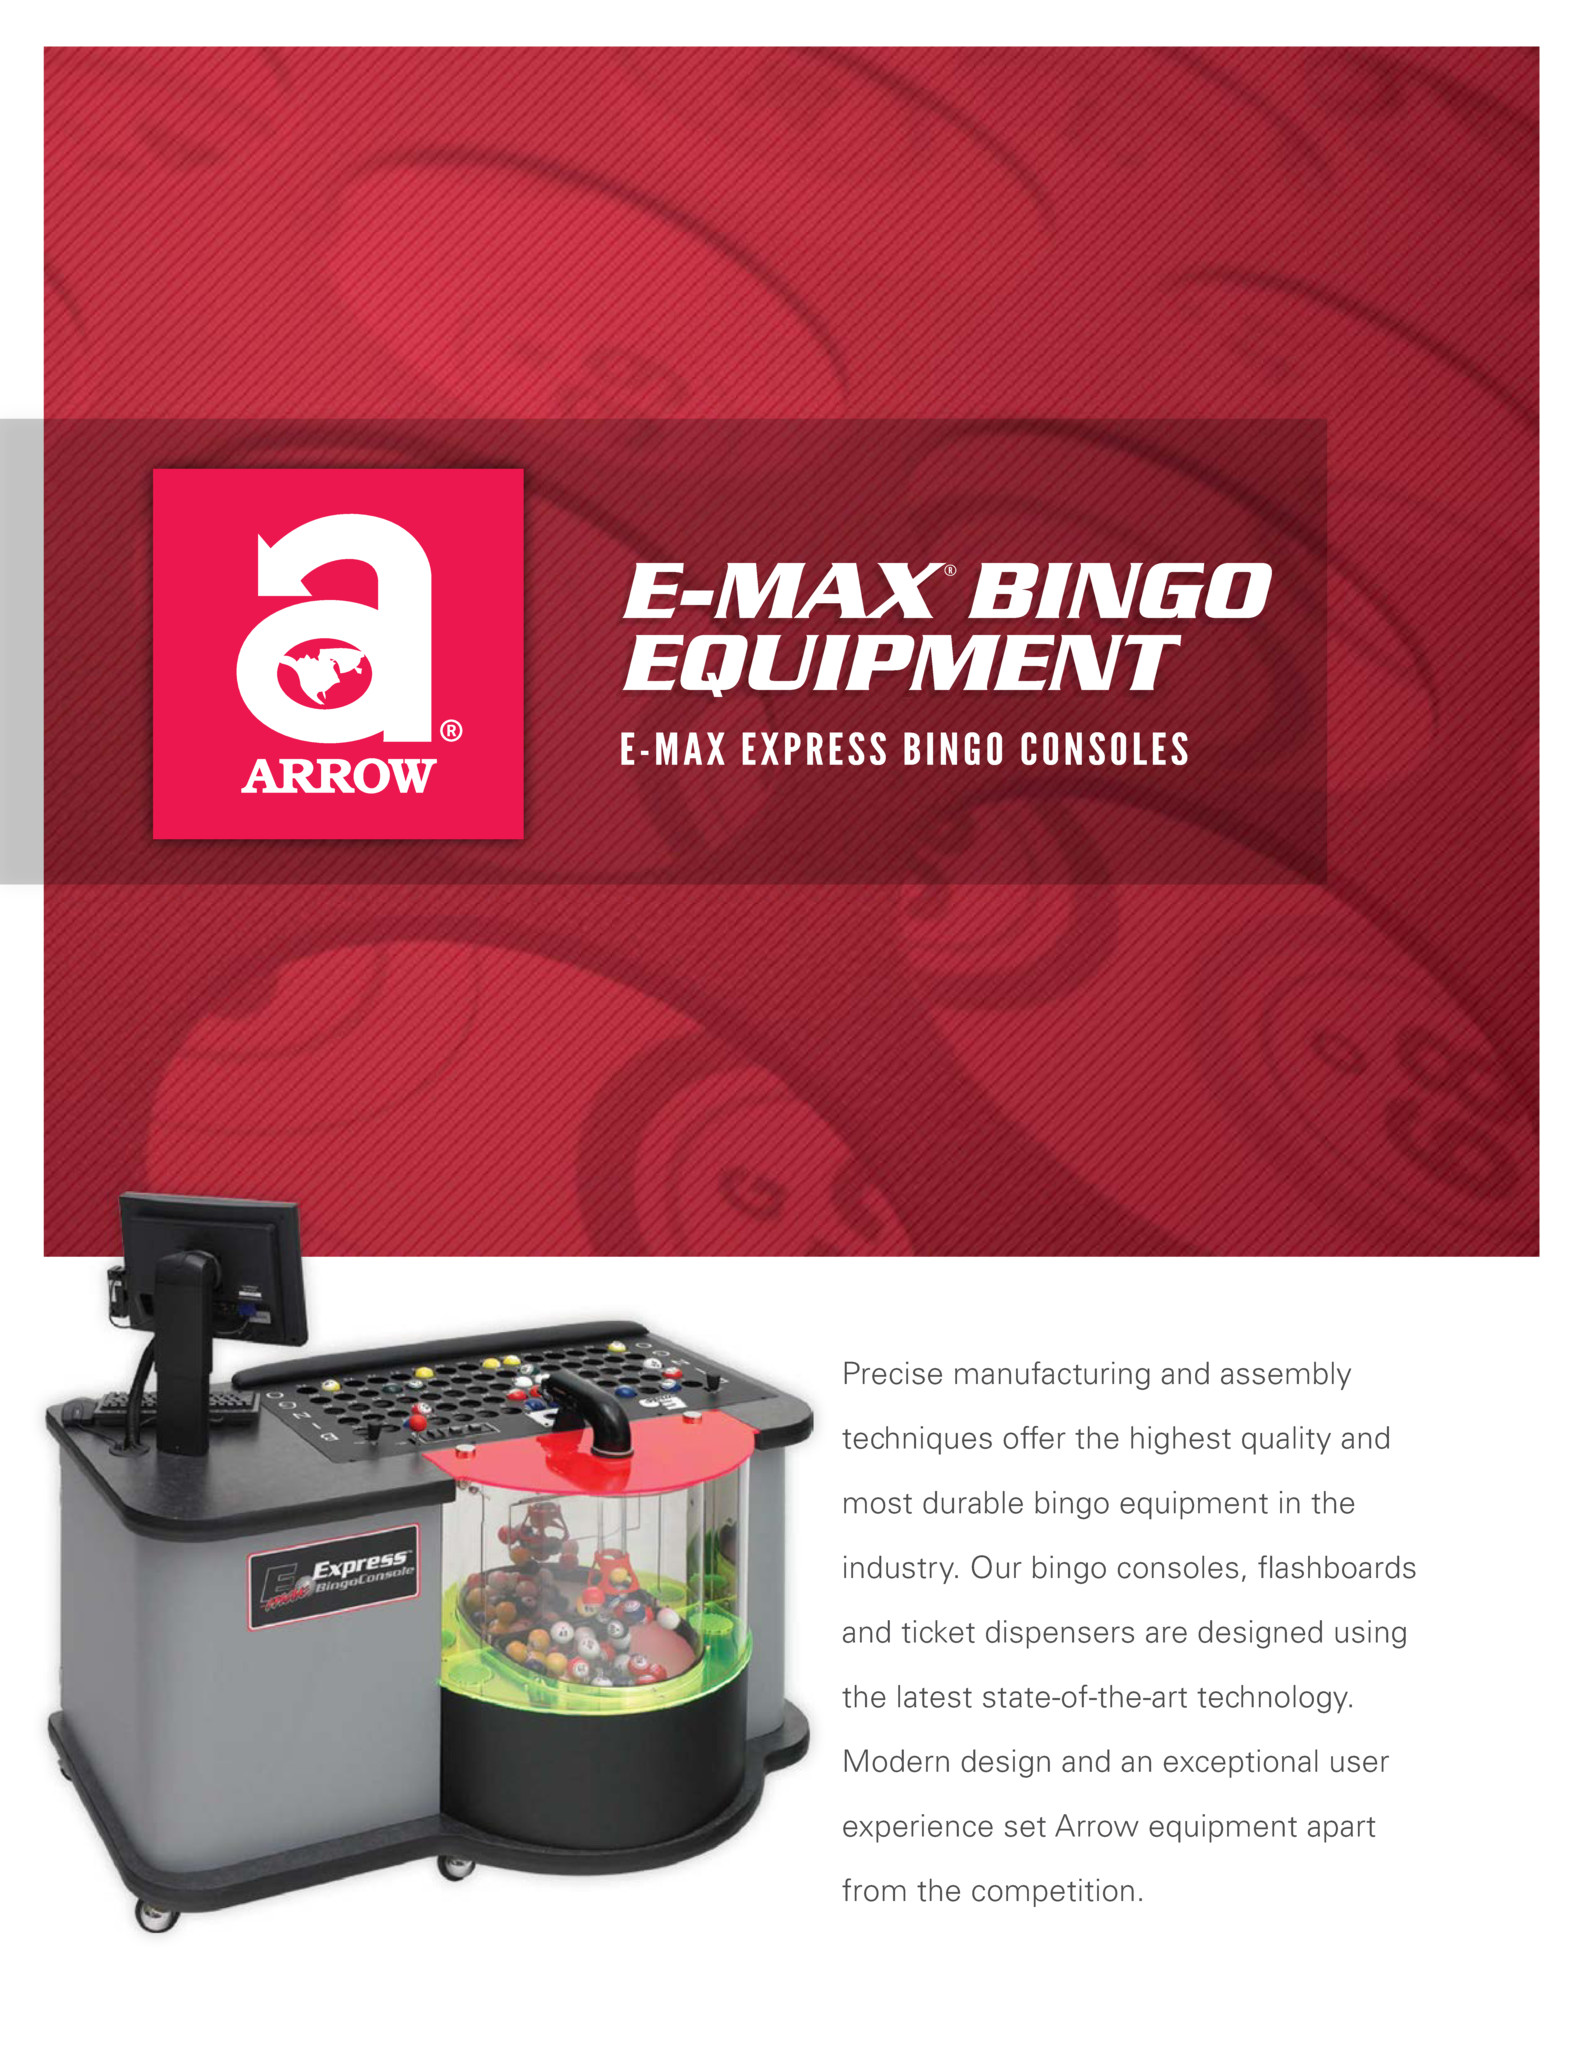 E-max Express Bingo Console Flyer Promotional Materials/Equipment Flyers & Brochures